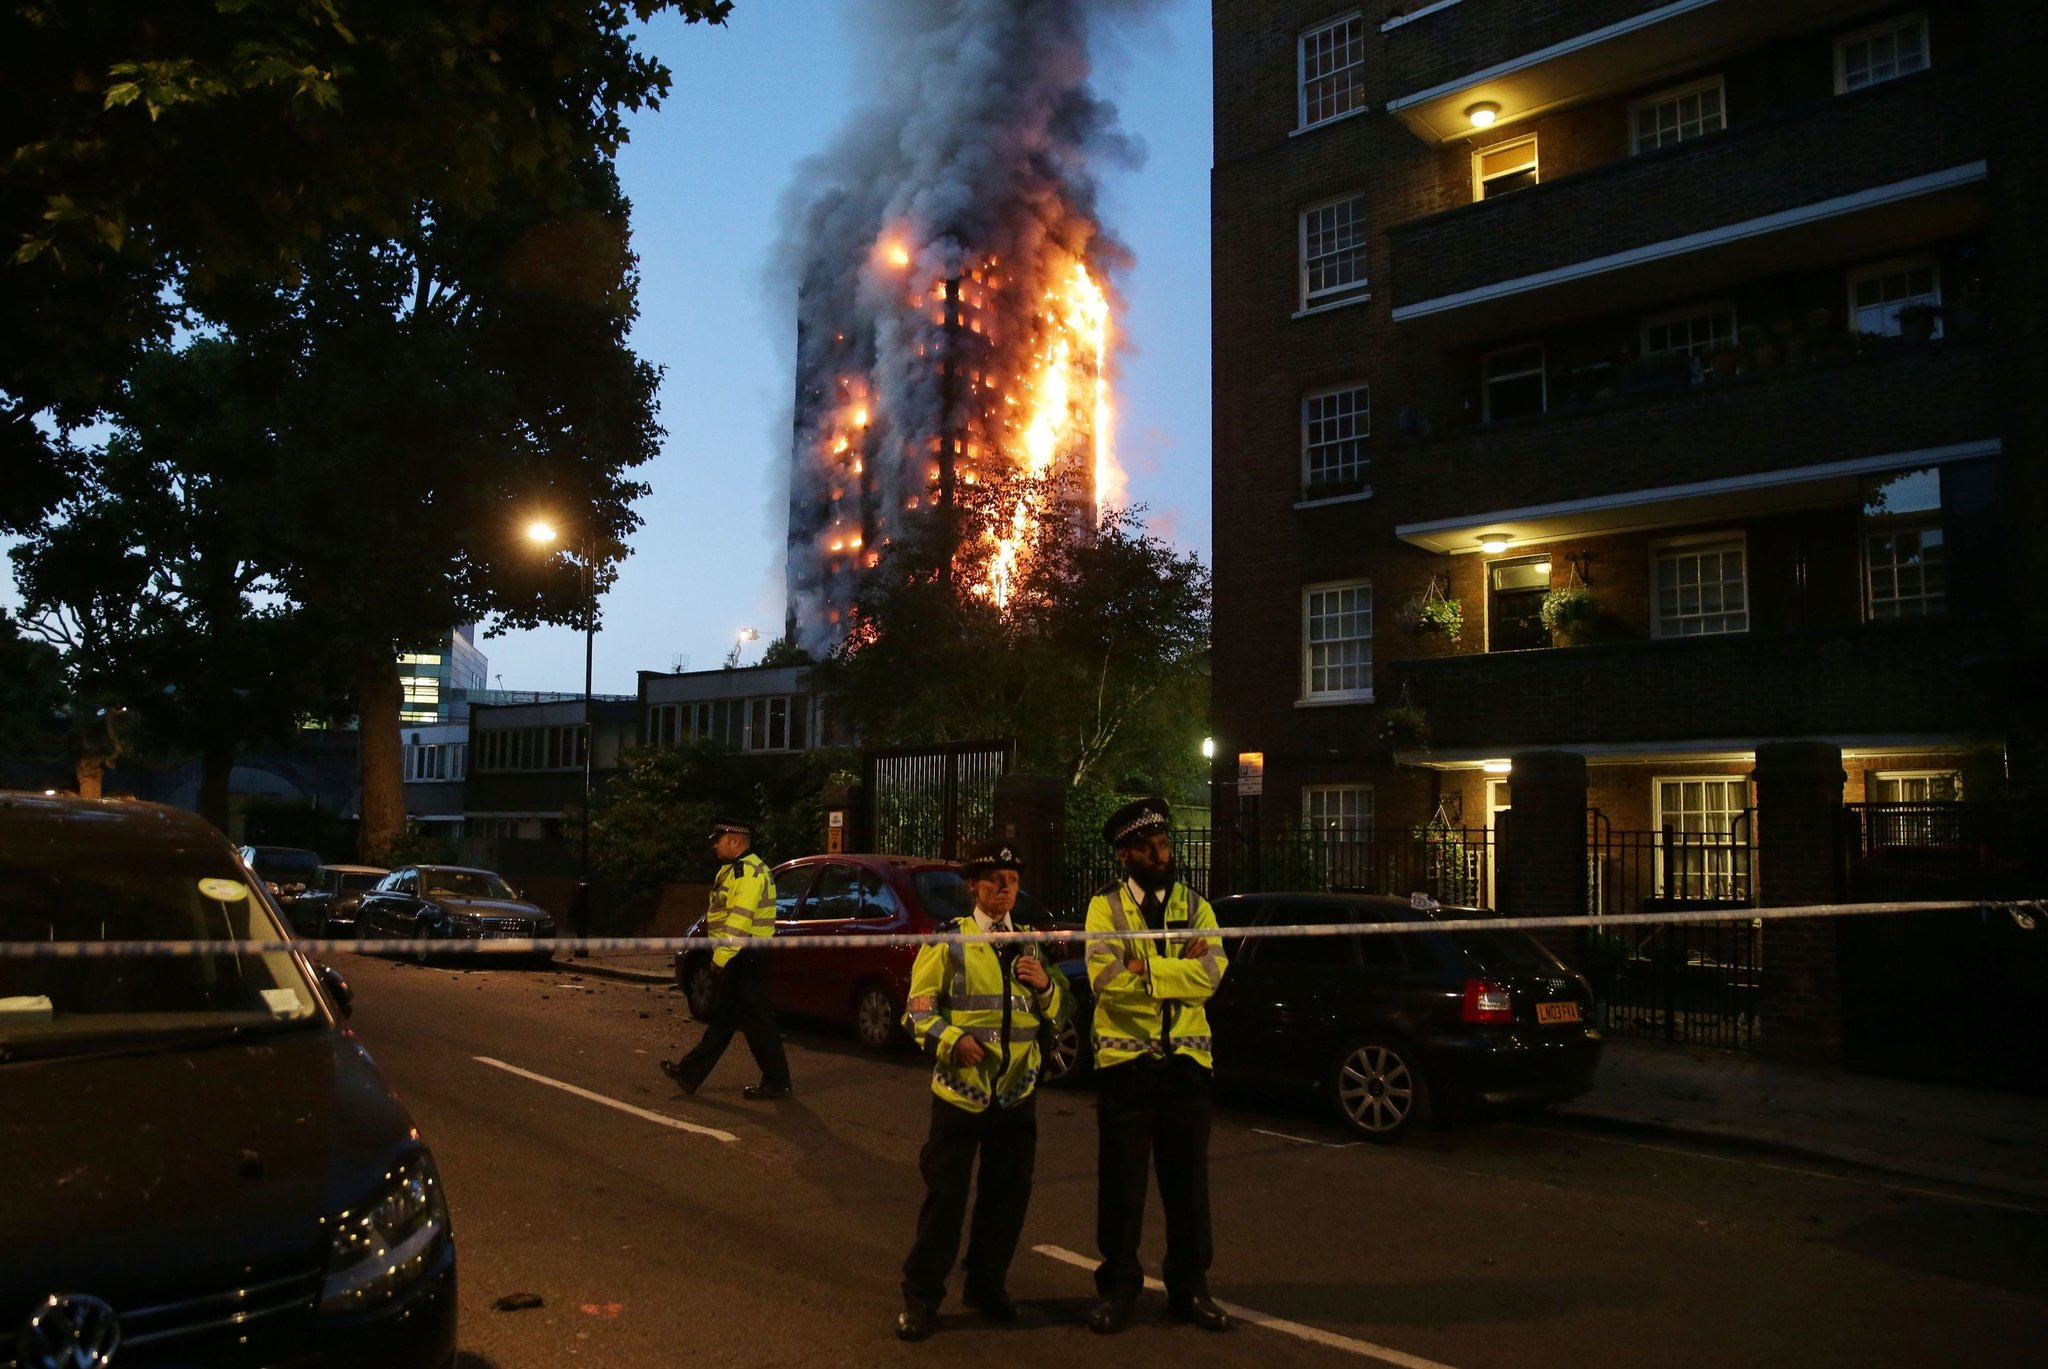 London fire June 14, 2017